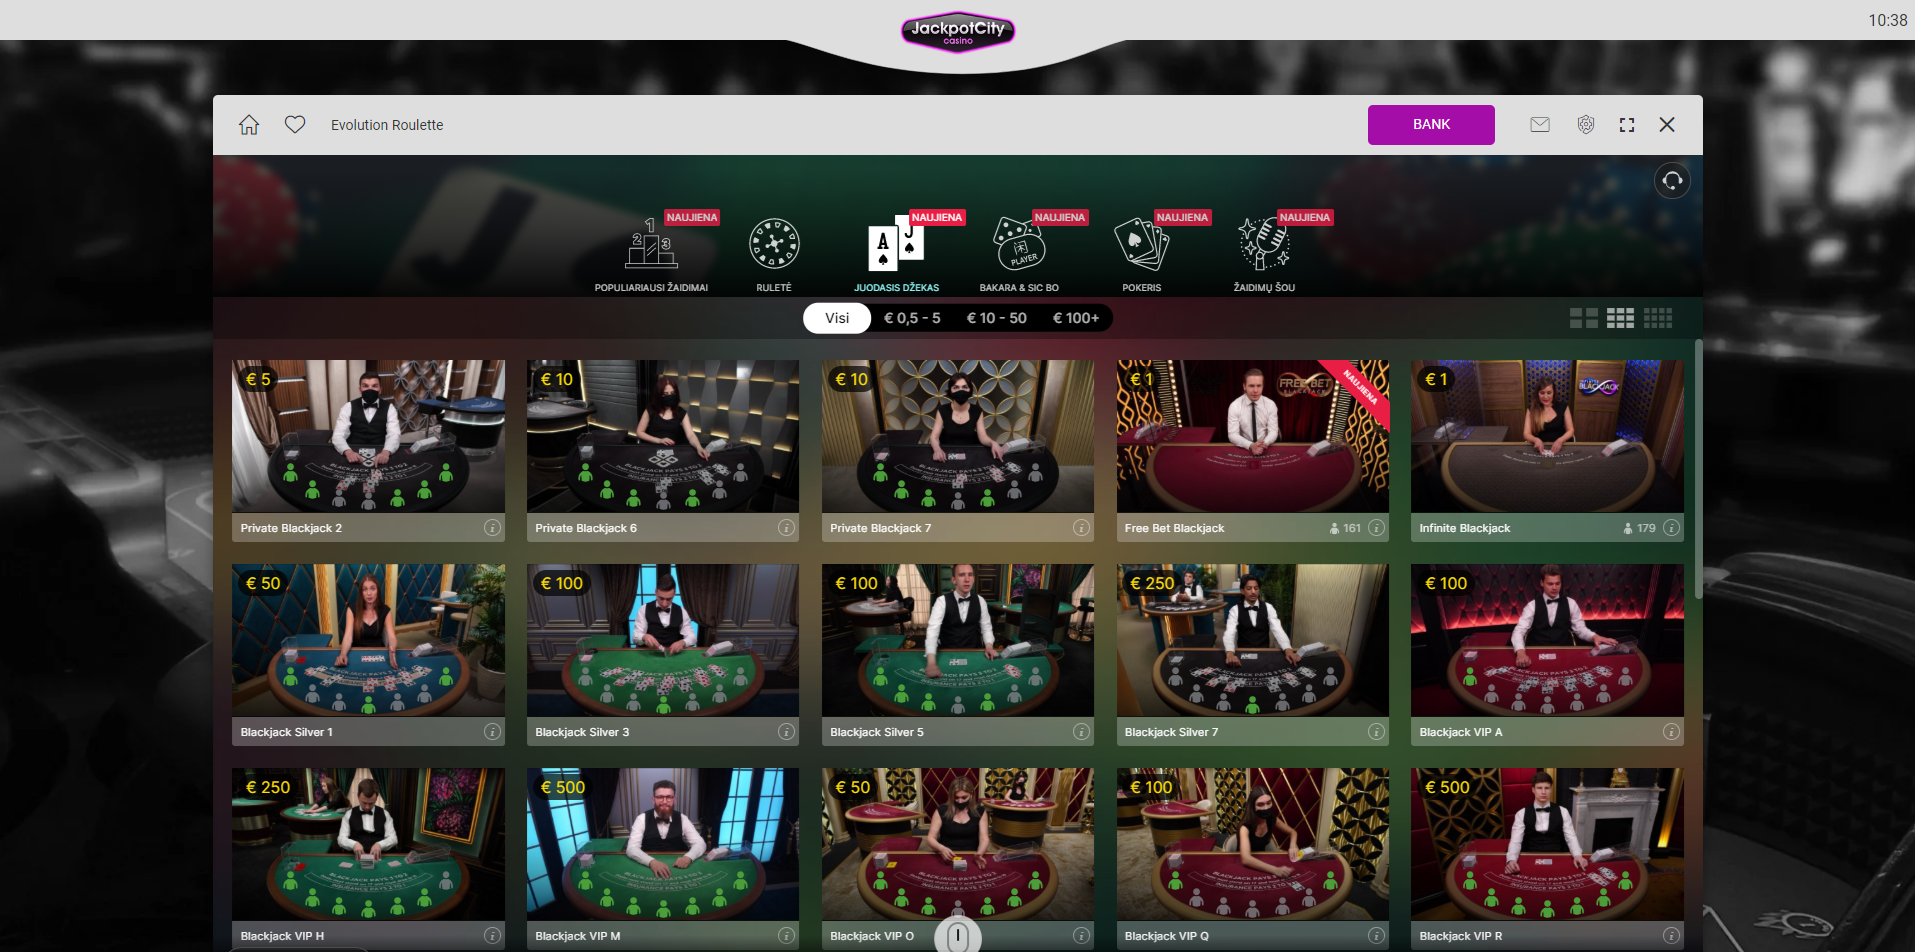 jackpot city live casino - blackjack roulette baccarat game show monopoly live lightning roulette